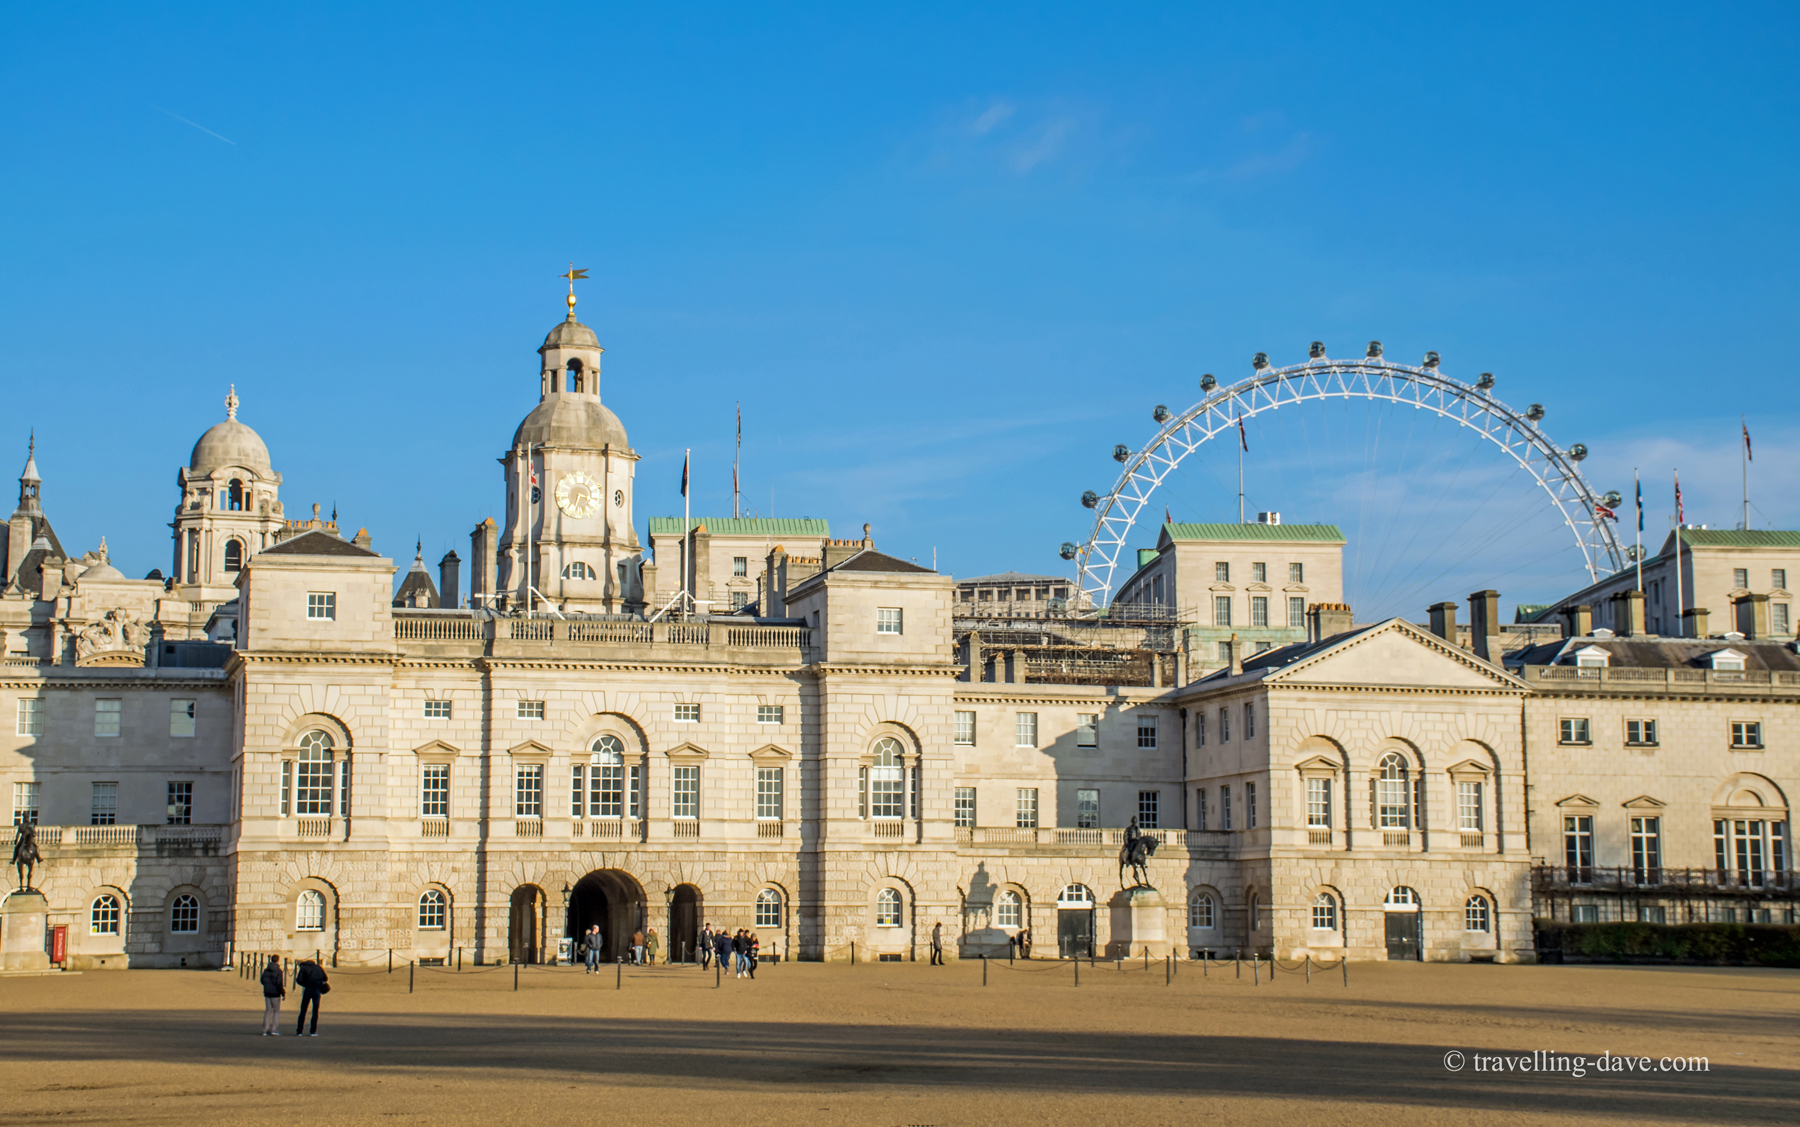 View of Horse Guards Parade and the London Eye